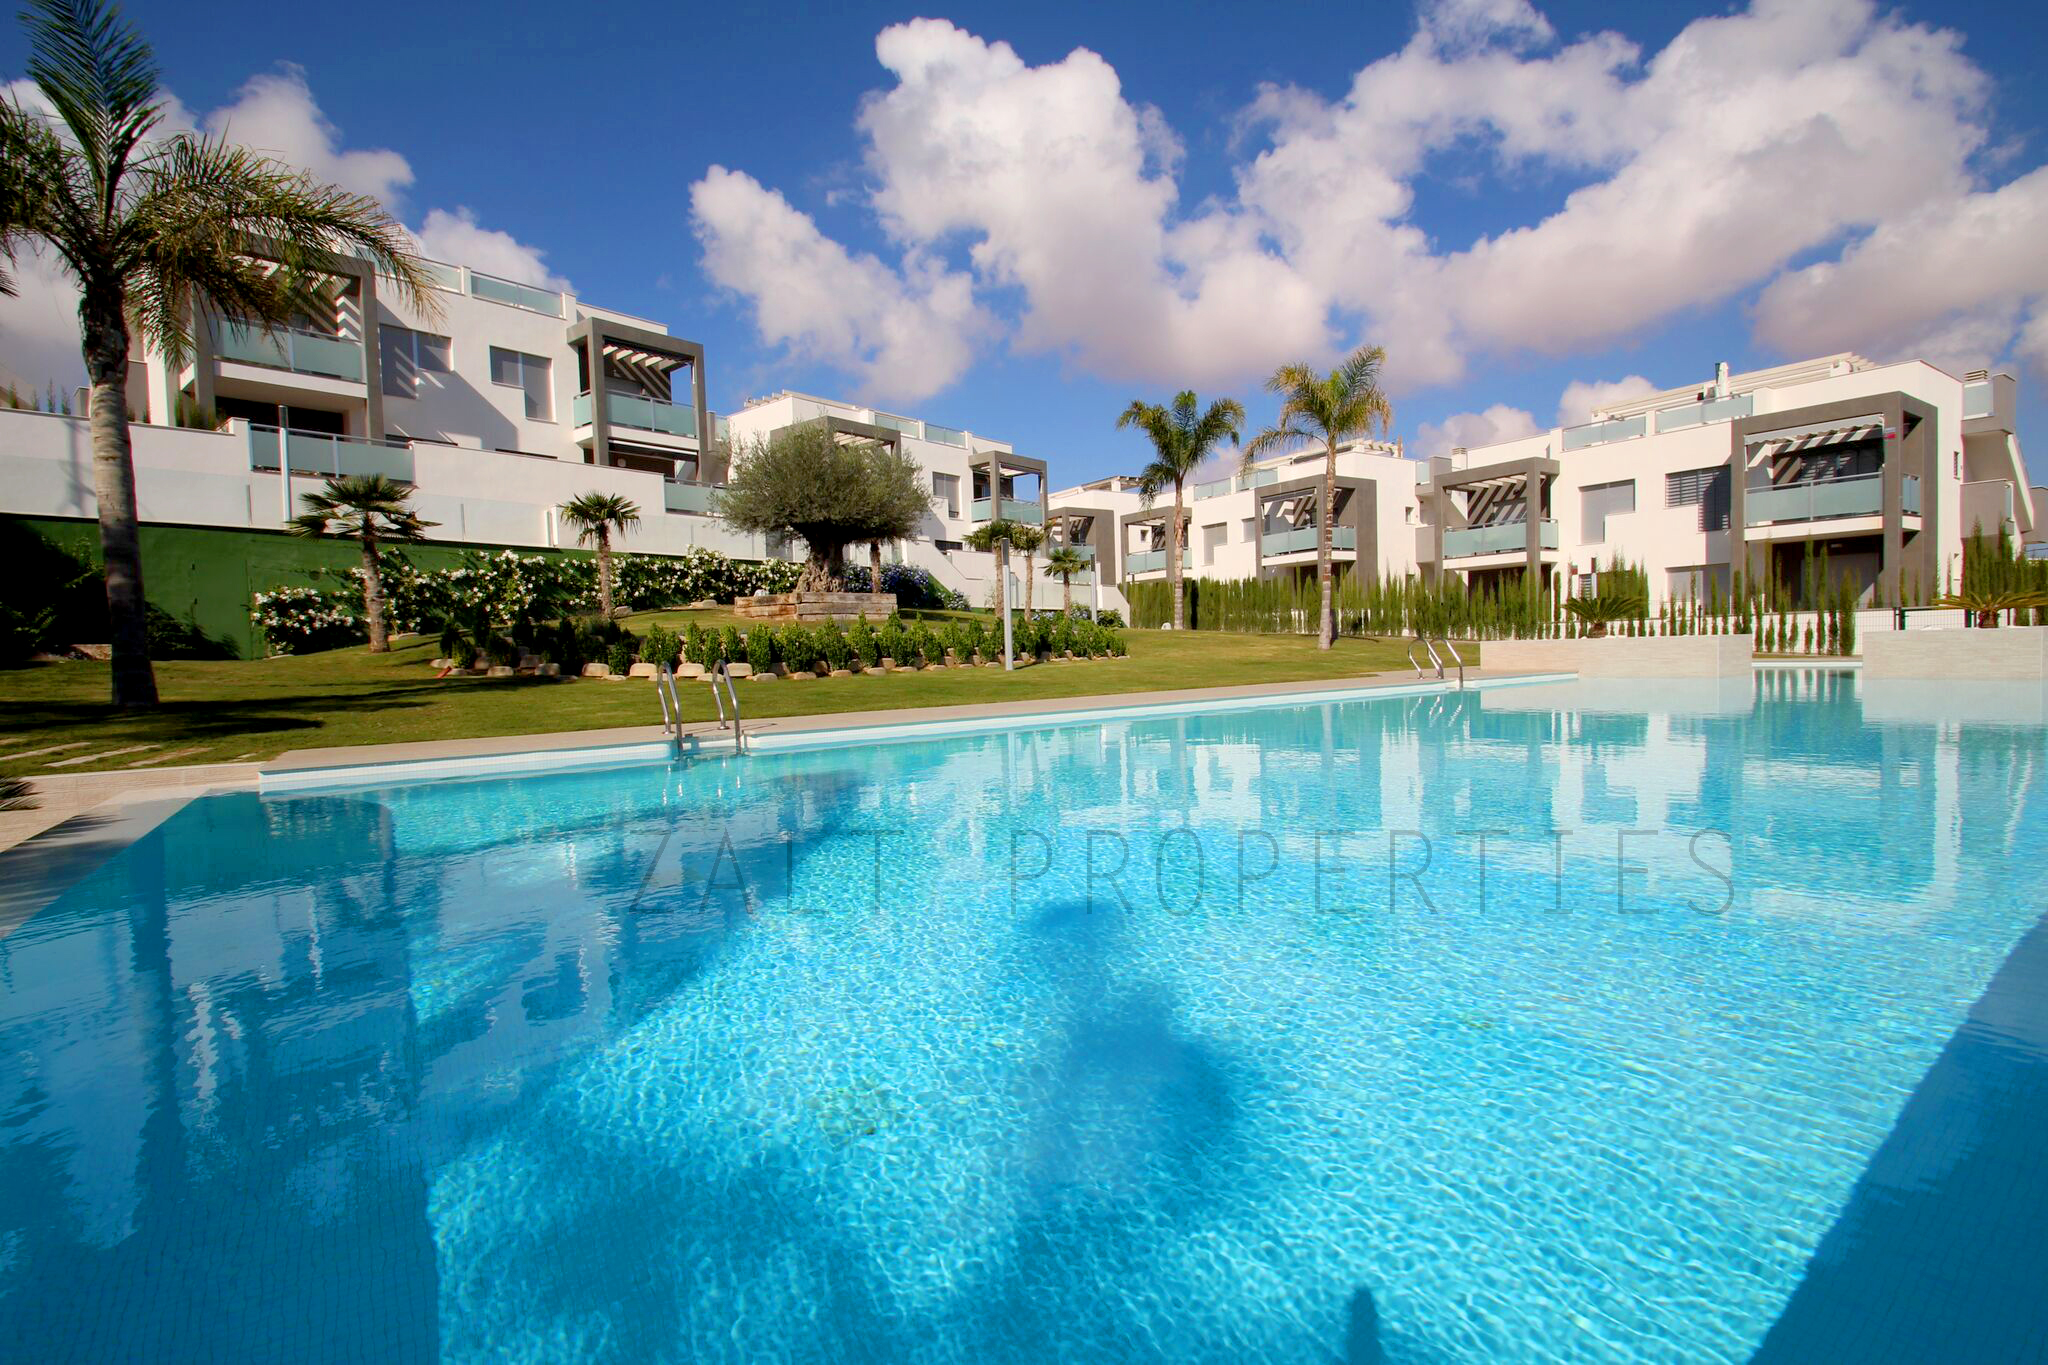 Los altos torrevieja zalt properties for Iceland torrevieja